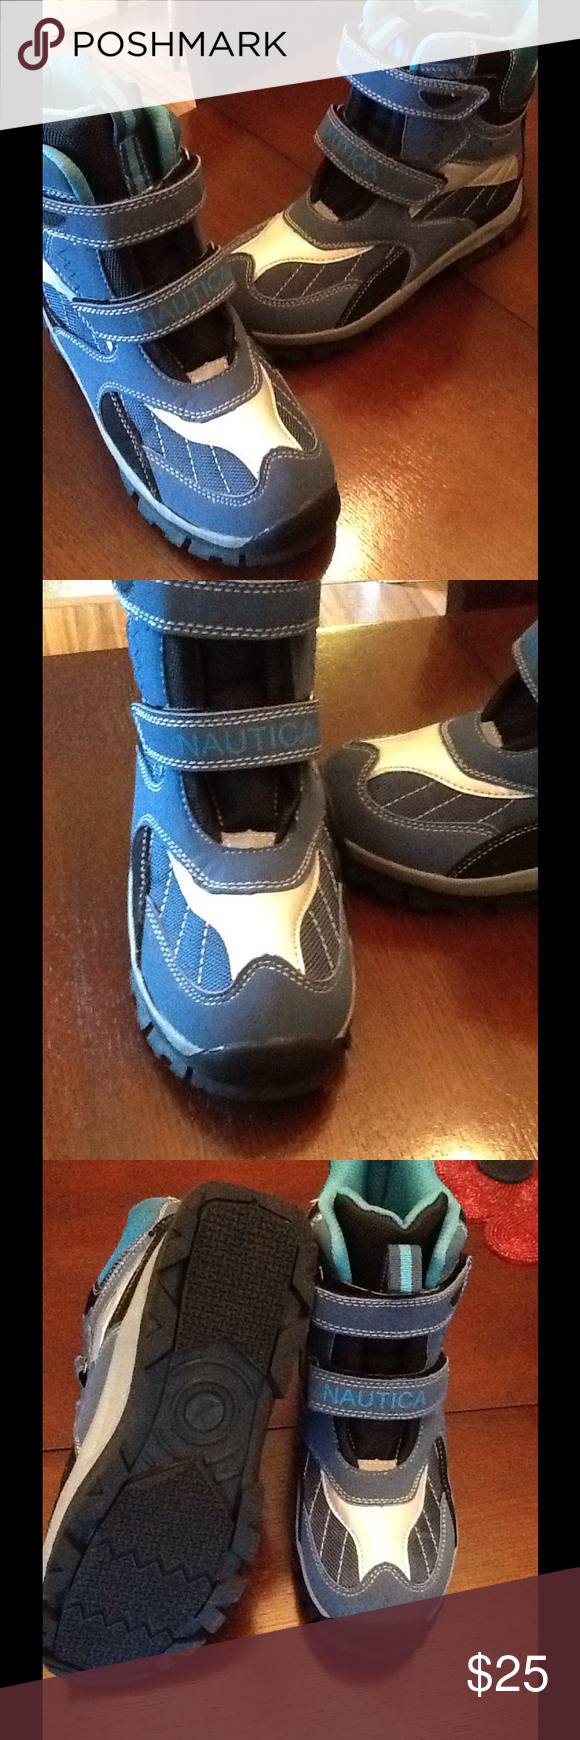 b7c090467 Big boy snow boots. Super warm, water resistant, in excellent condition,  blue snow boots by Nautica. Worn one time and then no more snow!